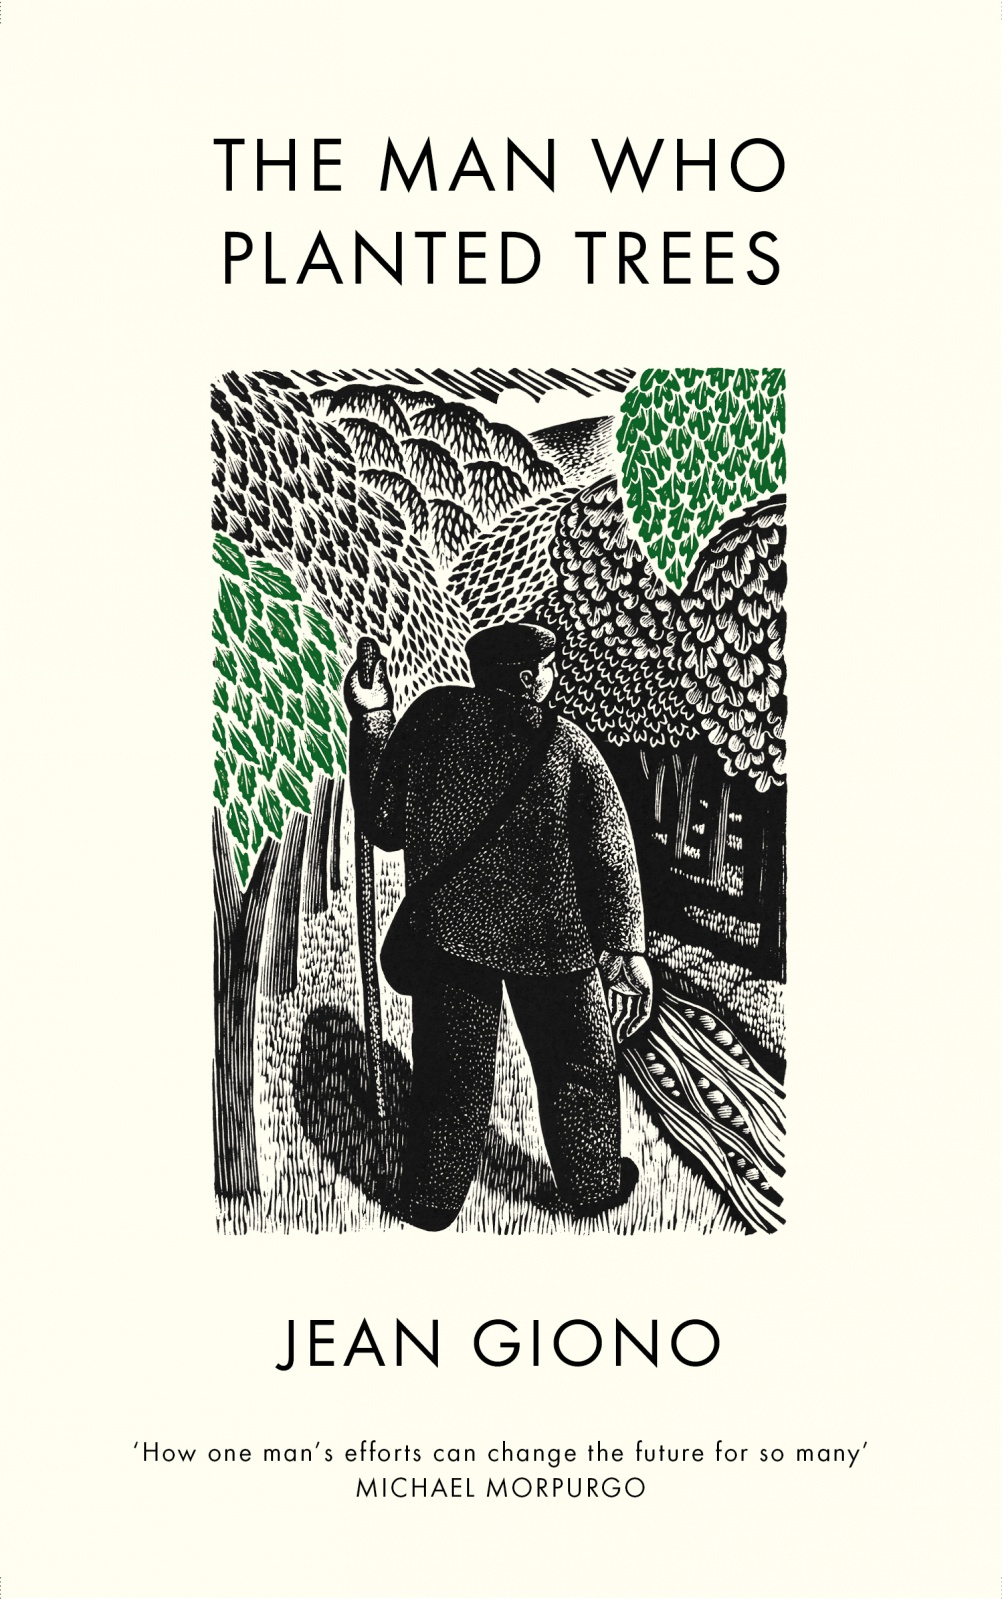 Man who planted trees, The (2015)